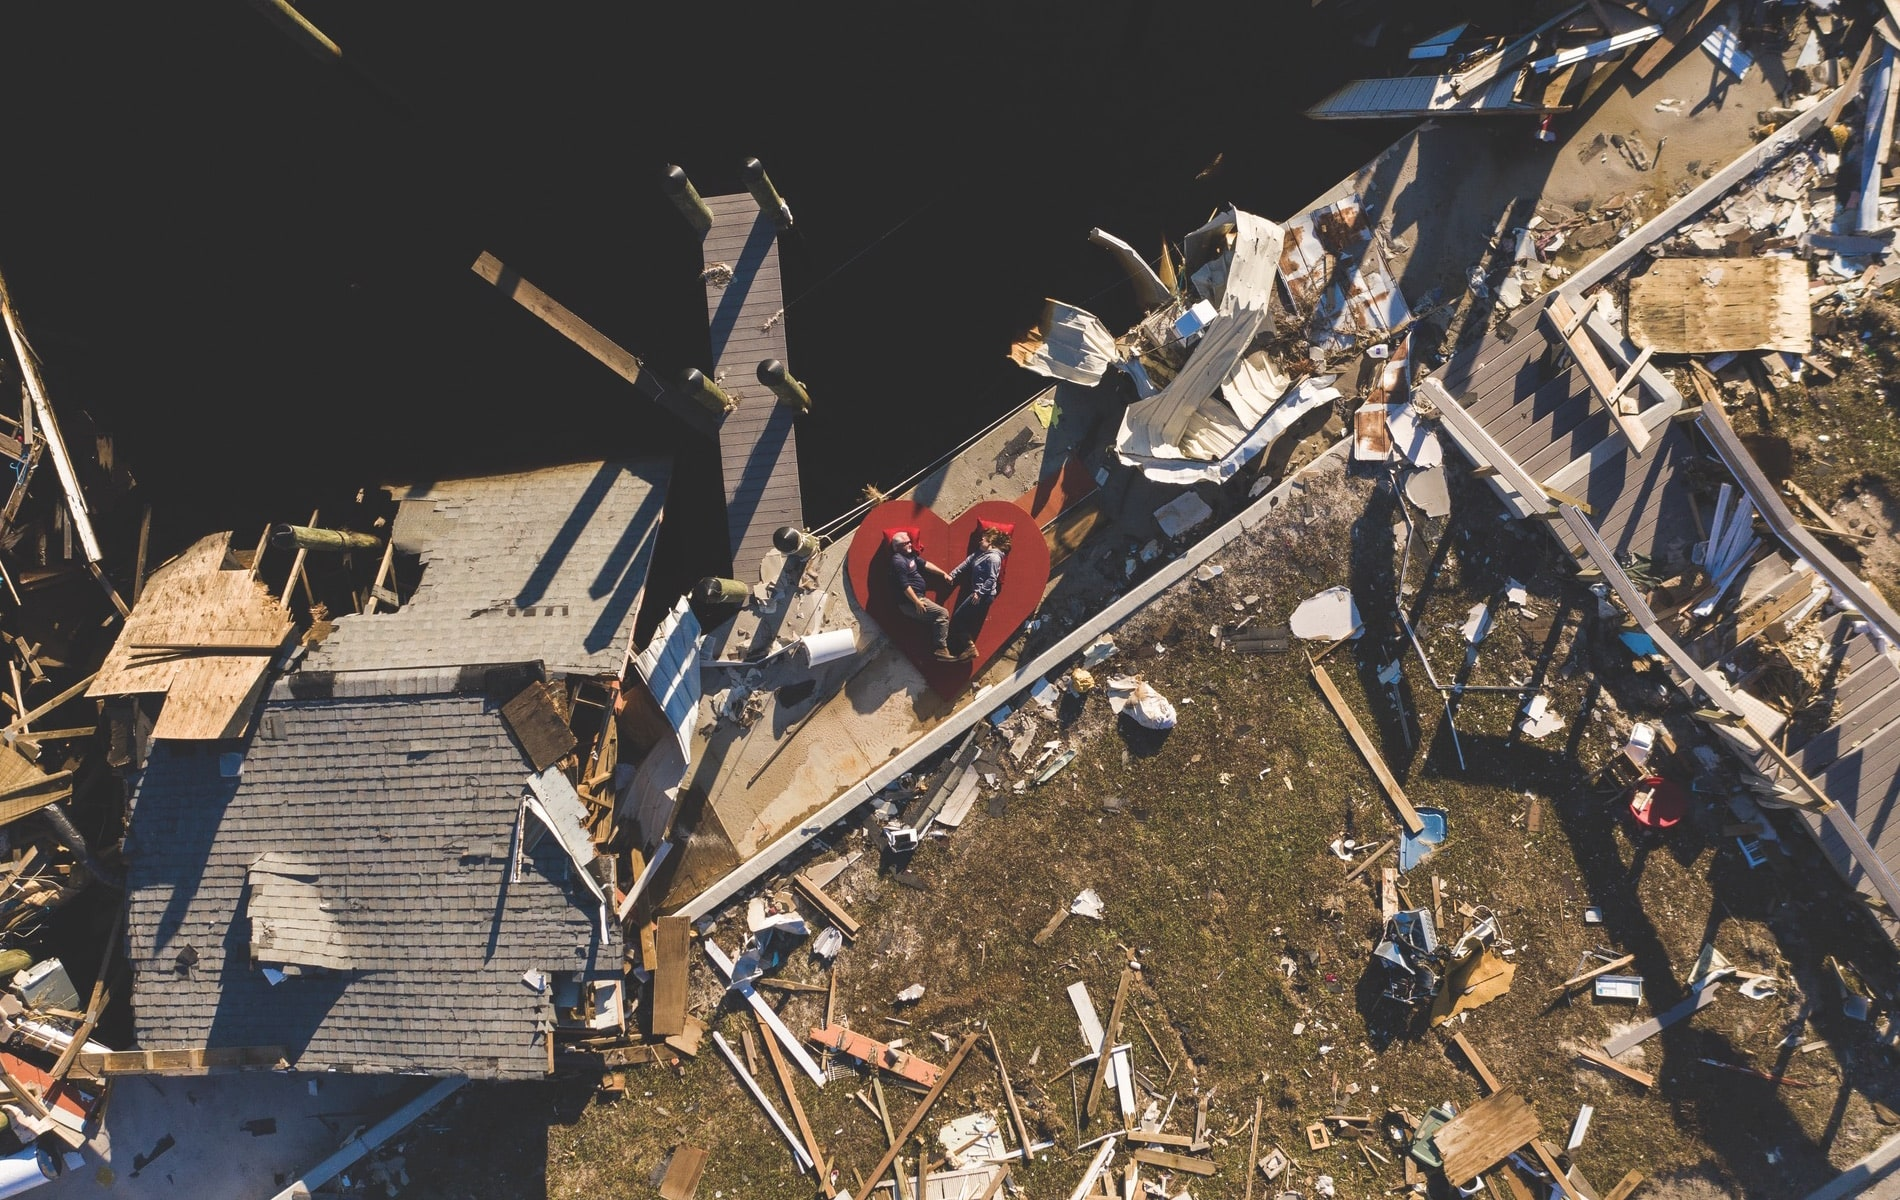 Owners Kevin and Cyndi Lanier of KCSportfishing lie amid the wreckage in Mexico Beach, Florida, as part of the Never Forgotten Coast campaign. In the wake of Hurricane Michael, the Laniers plan to rebuild their lives and their business alongside their neighbors.